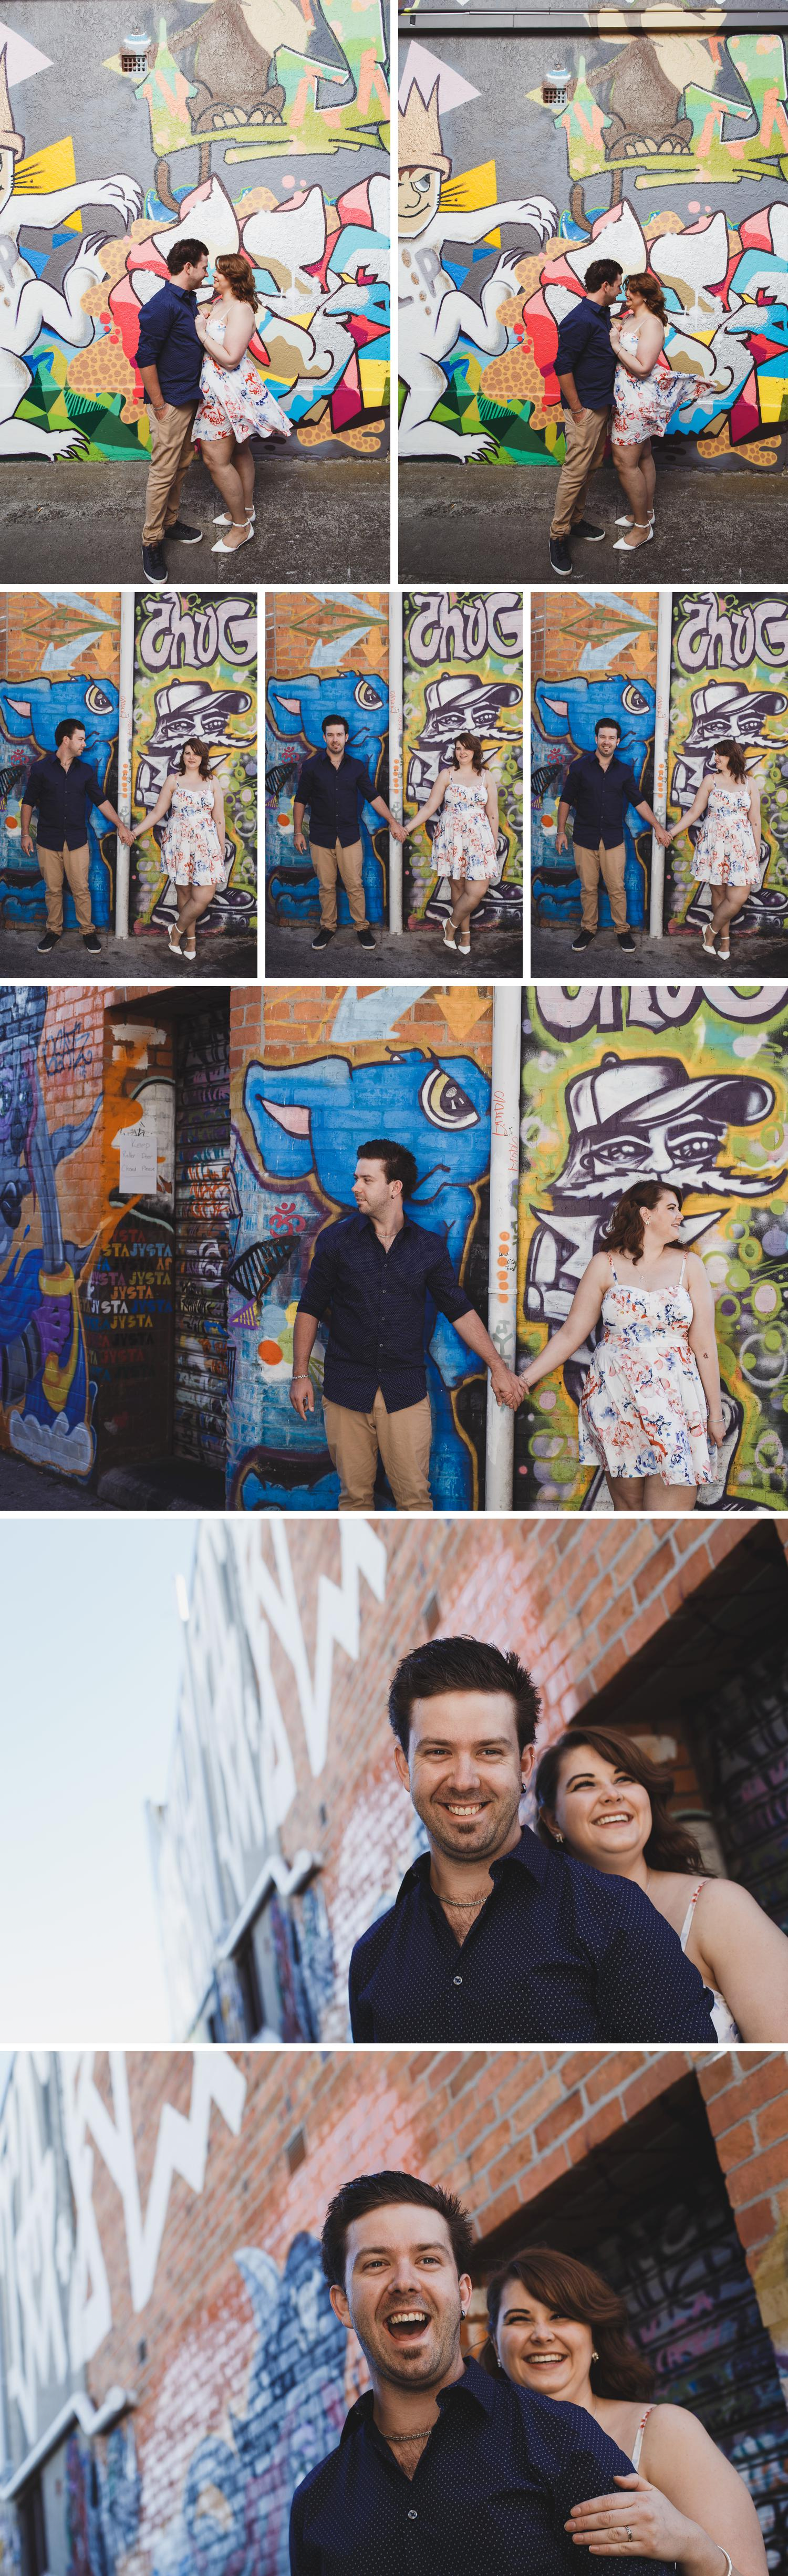 Gippsland Graffiti Wall, Urban Alley Engagement Shoot Victoria, Couple Standing by Graffiti Art Photo by Danae Studios